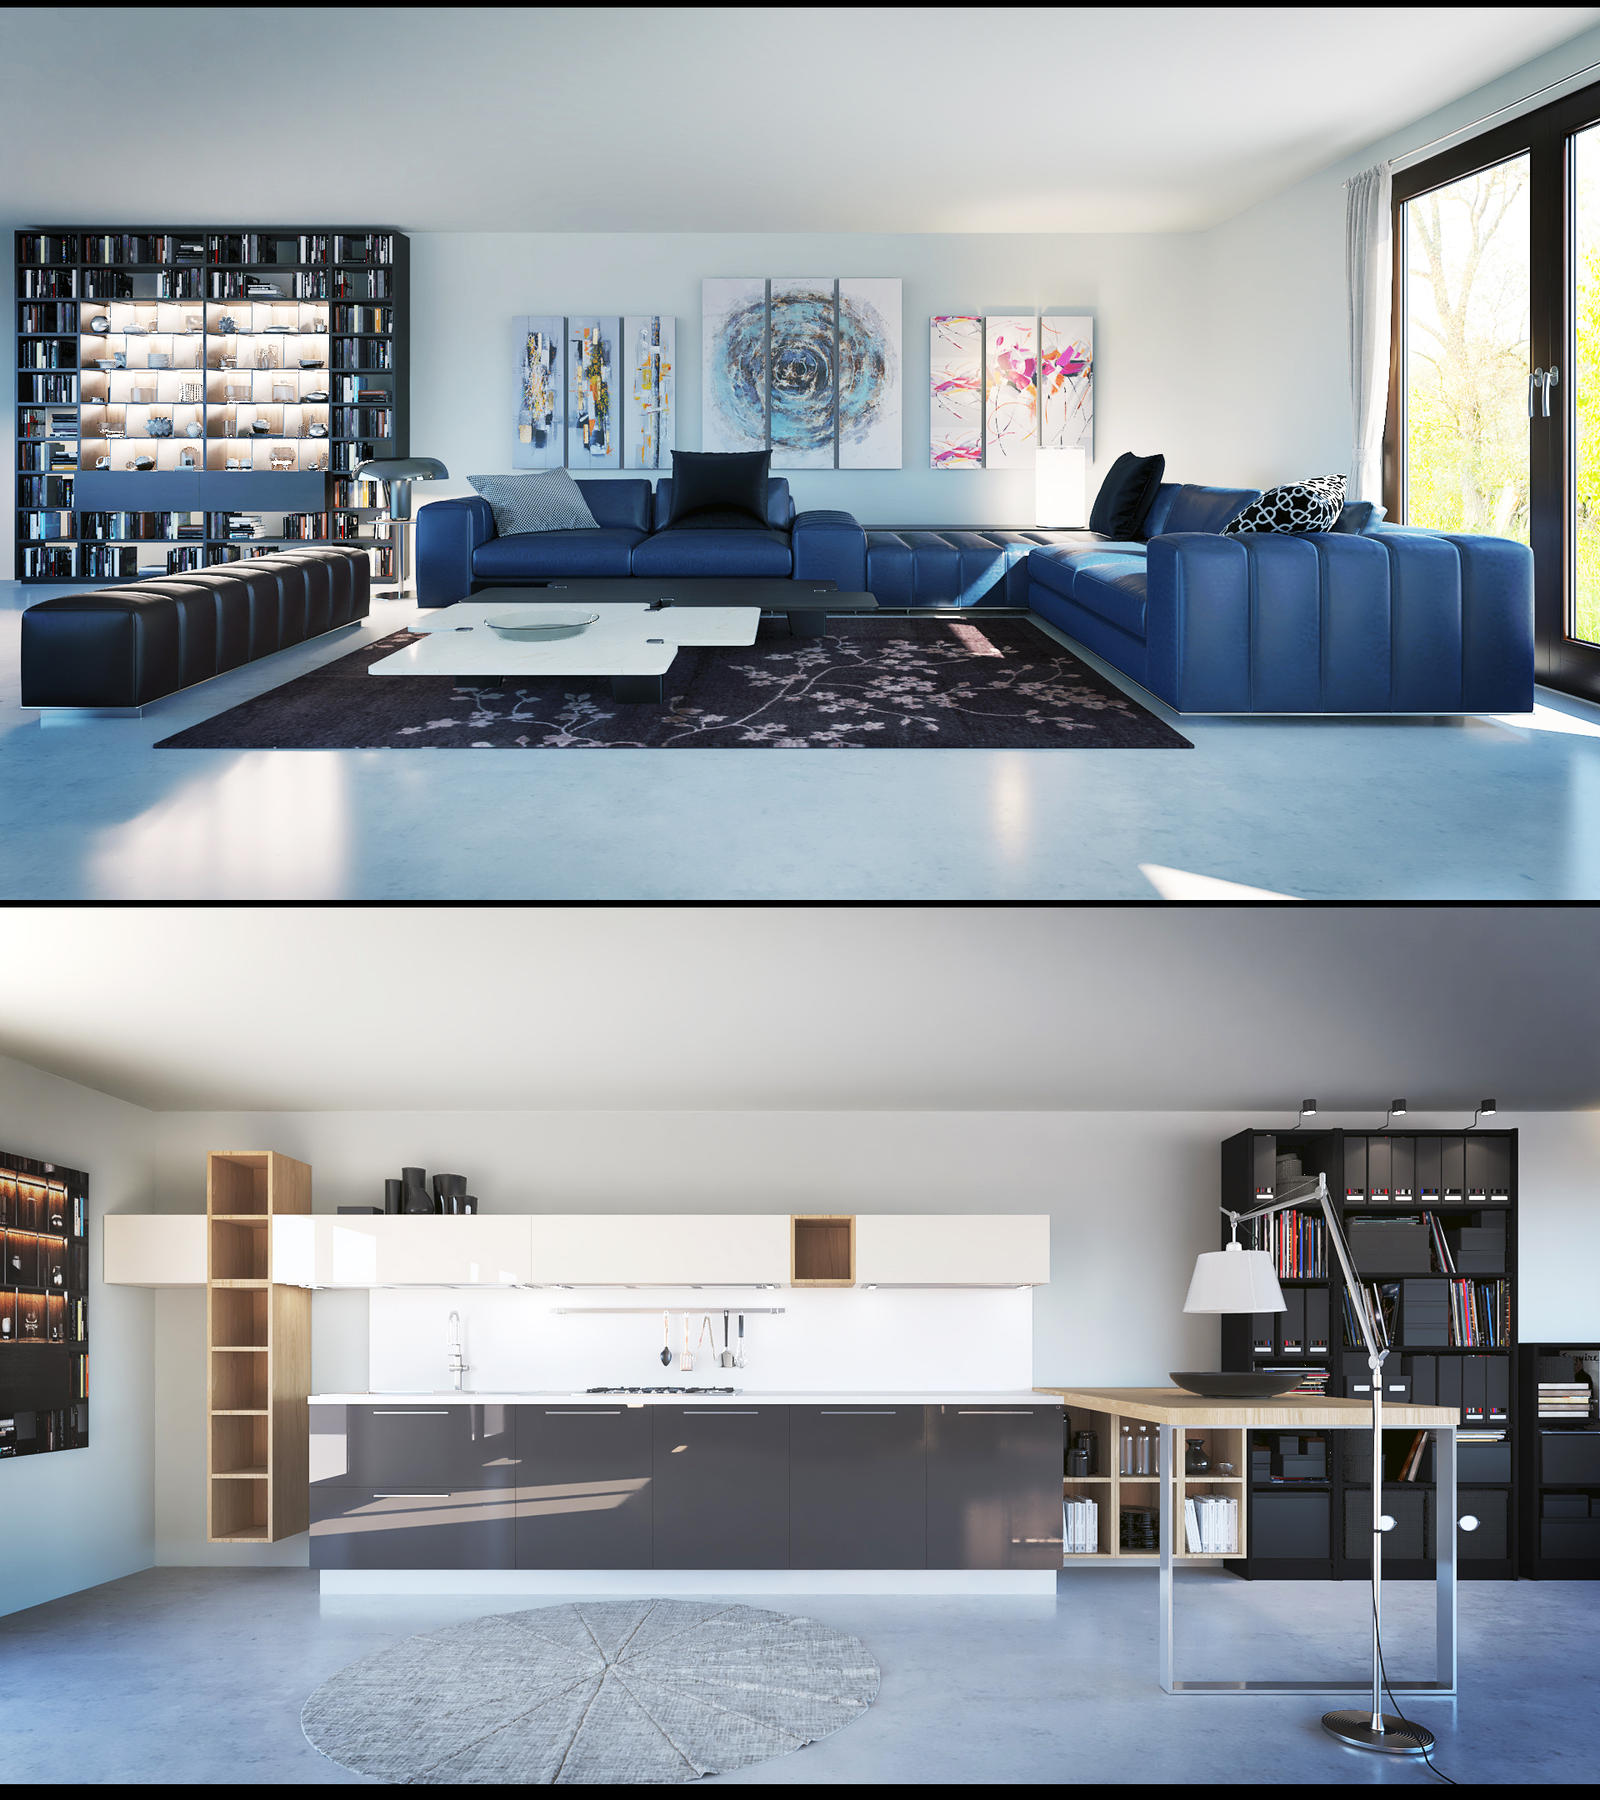 Living Room And Kitchen Vray Render By Externible On